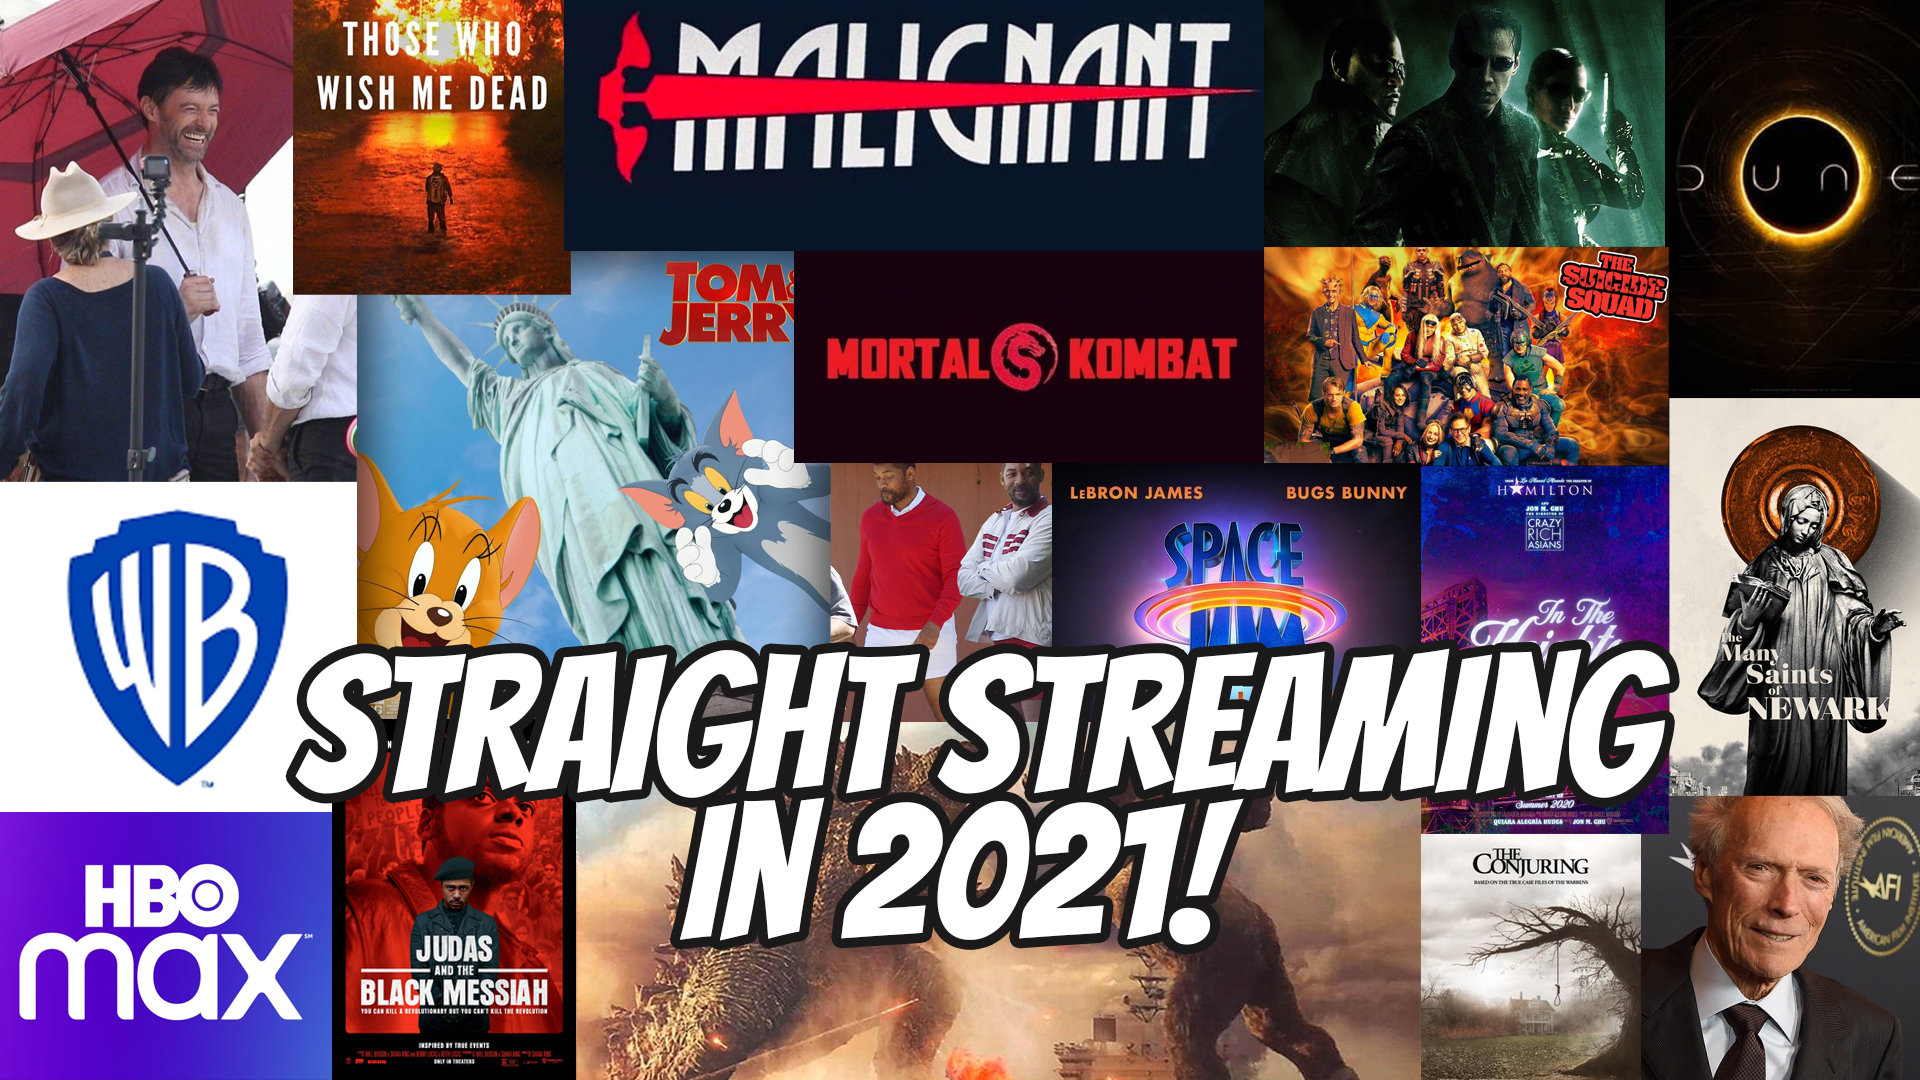 Are Movie Theaters completely dead? | WB streaming all 2021 movies on HBO Max | The LOWKEY GEEK Podcast #24